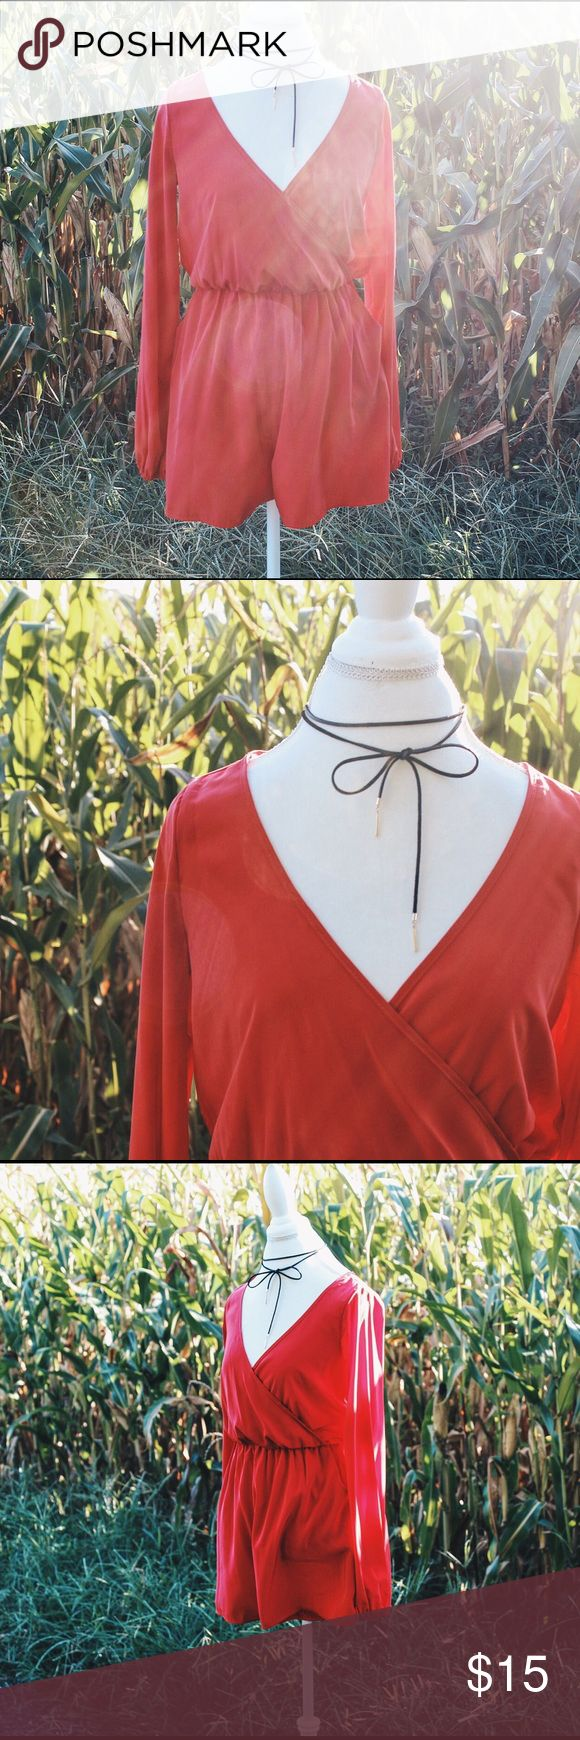 Red playsuit Red summer playsuit Other